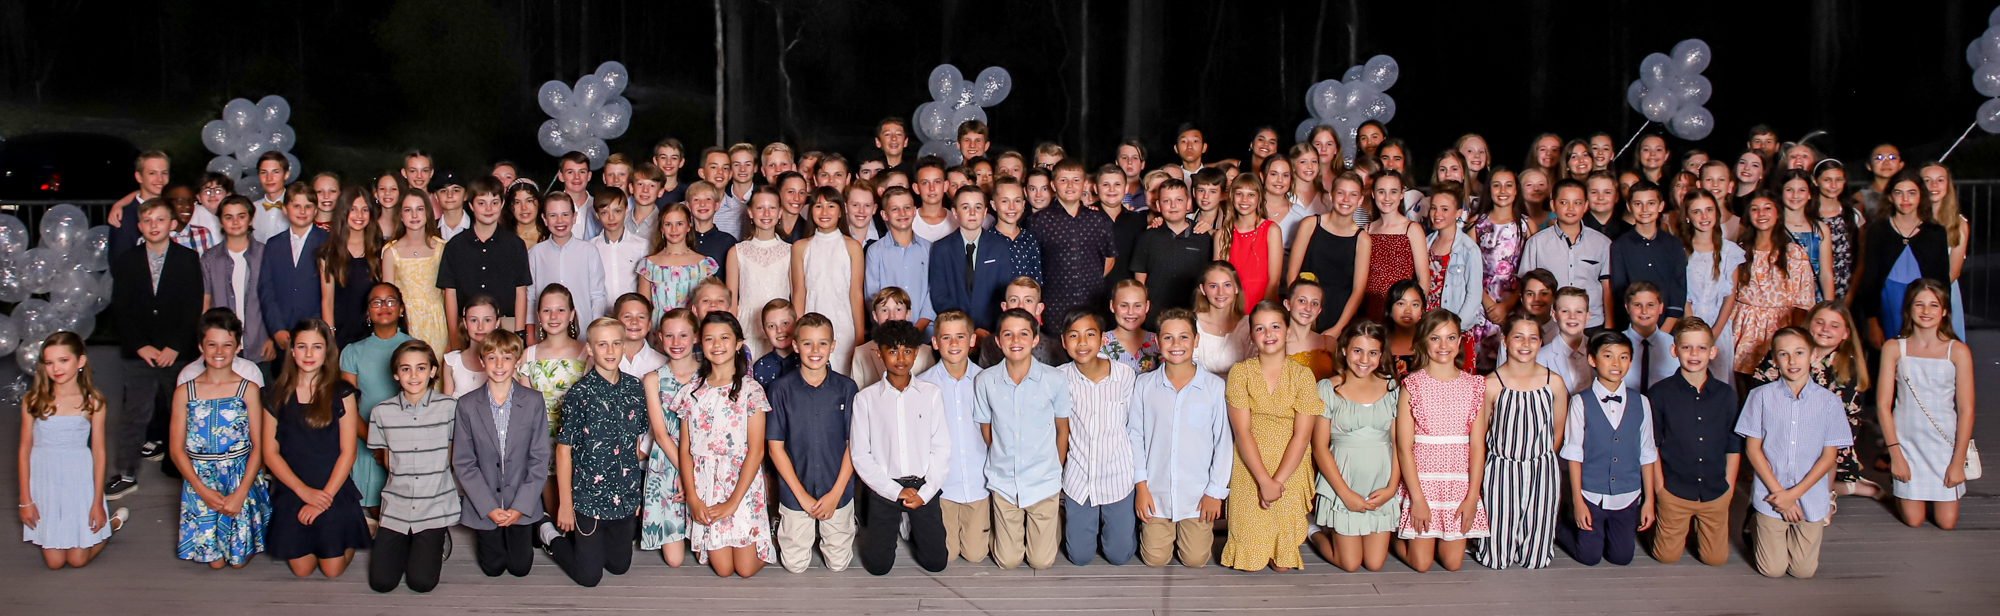 Year 6 Graduation and Dinner 2020